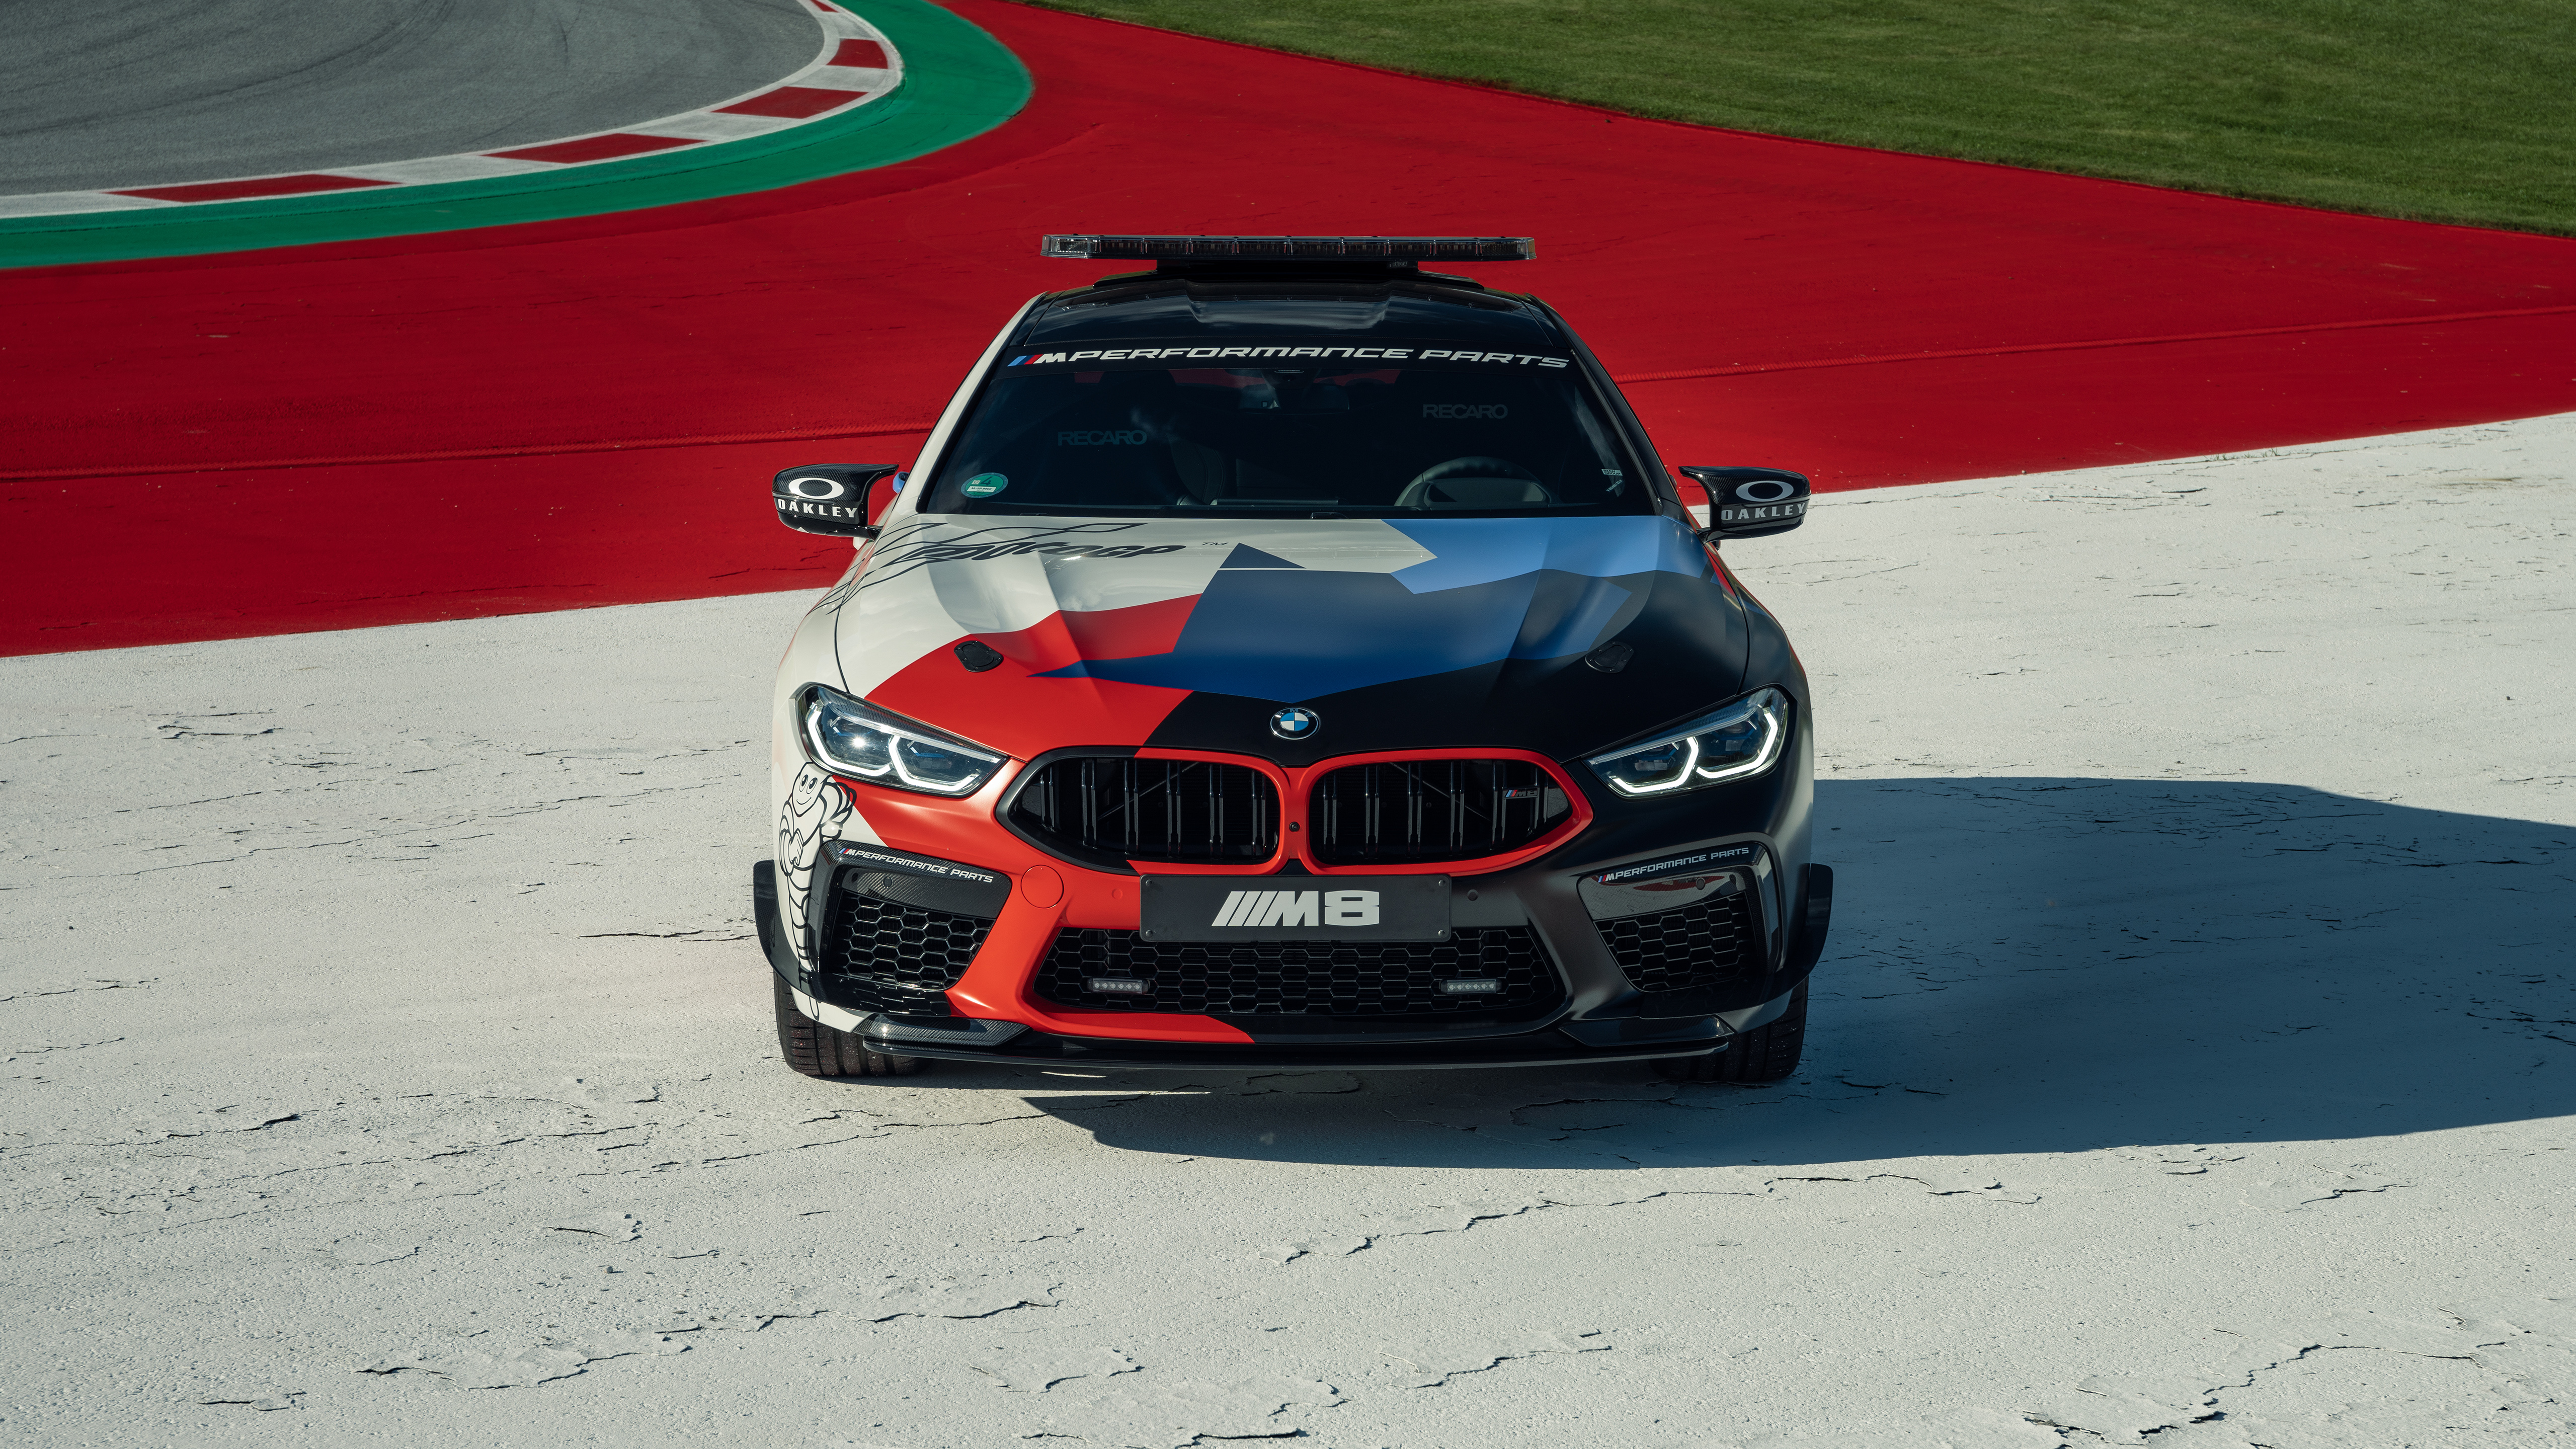 Bmw M8 Competition Gran Coupe Motogp Safety Car 2020 5k 3 Wallpaper Hd Car Wallpapers Id 15598